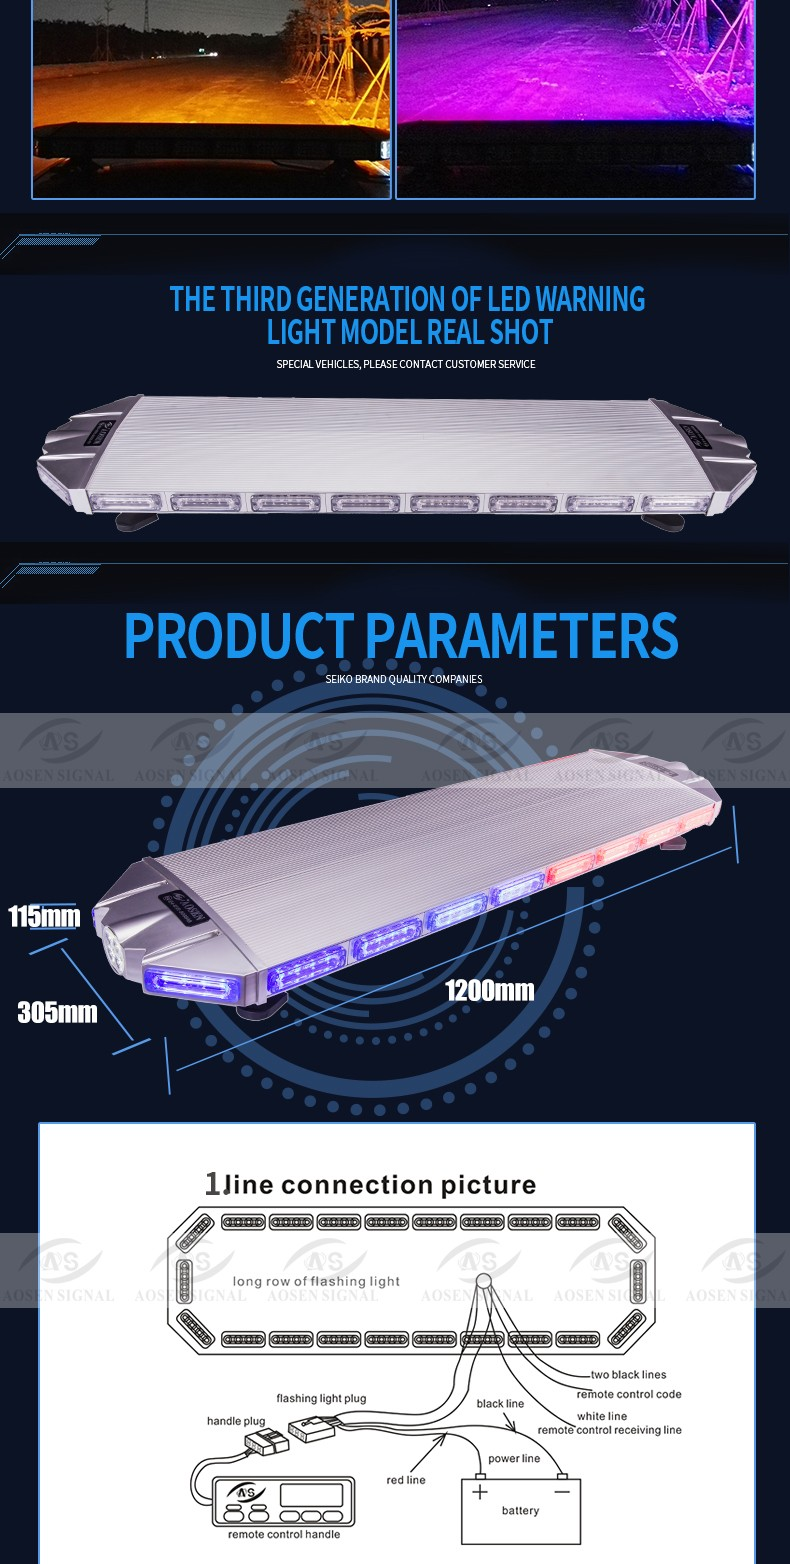 Warranty 5 year Newest Super Thin Led lightbar for TBD-7E925 with trade assurance